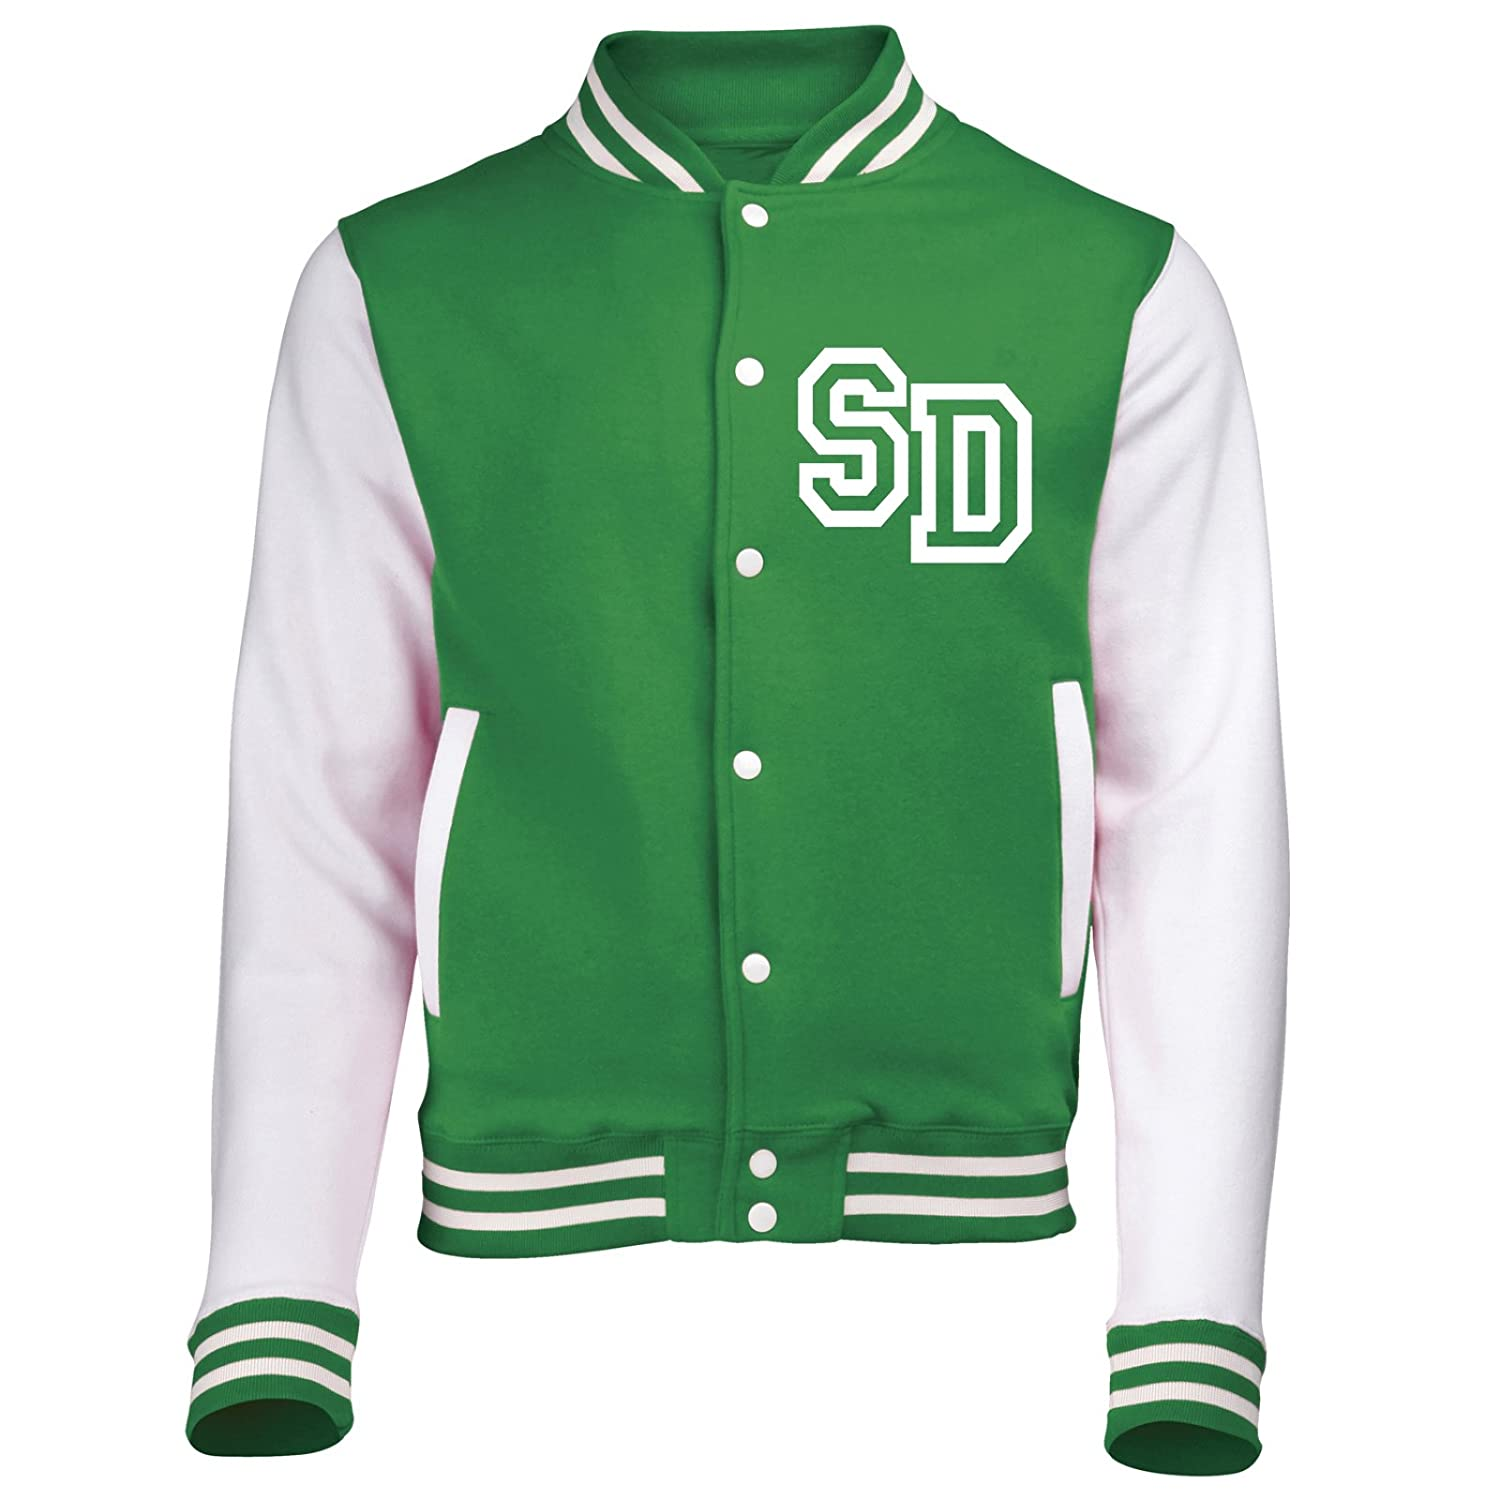 KIDS VARSITY JACKET WITH FRONT INITIAL PERSONALISATION (Kelly Green / White) NEW PREMIUM Unisex American Style Letterman College Baseball Custom Top Boy Girl Children Child Gift Present AWD - By 123t Fonfella